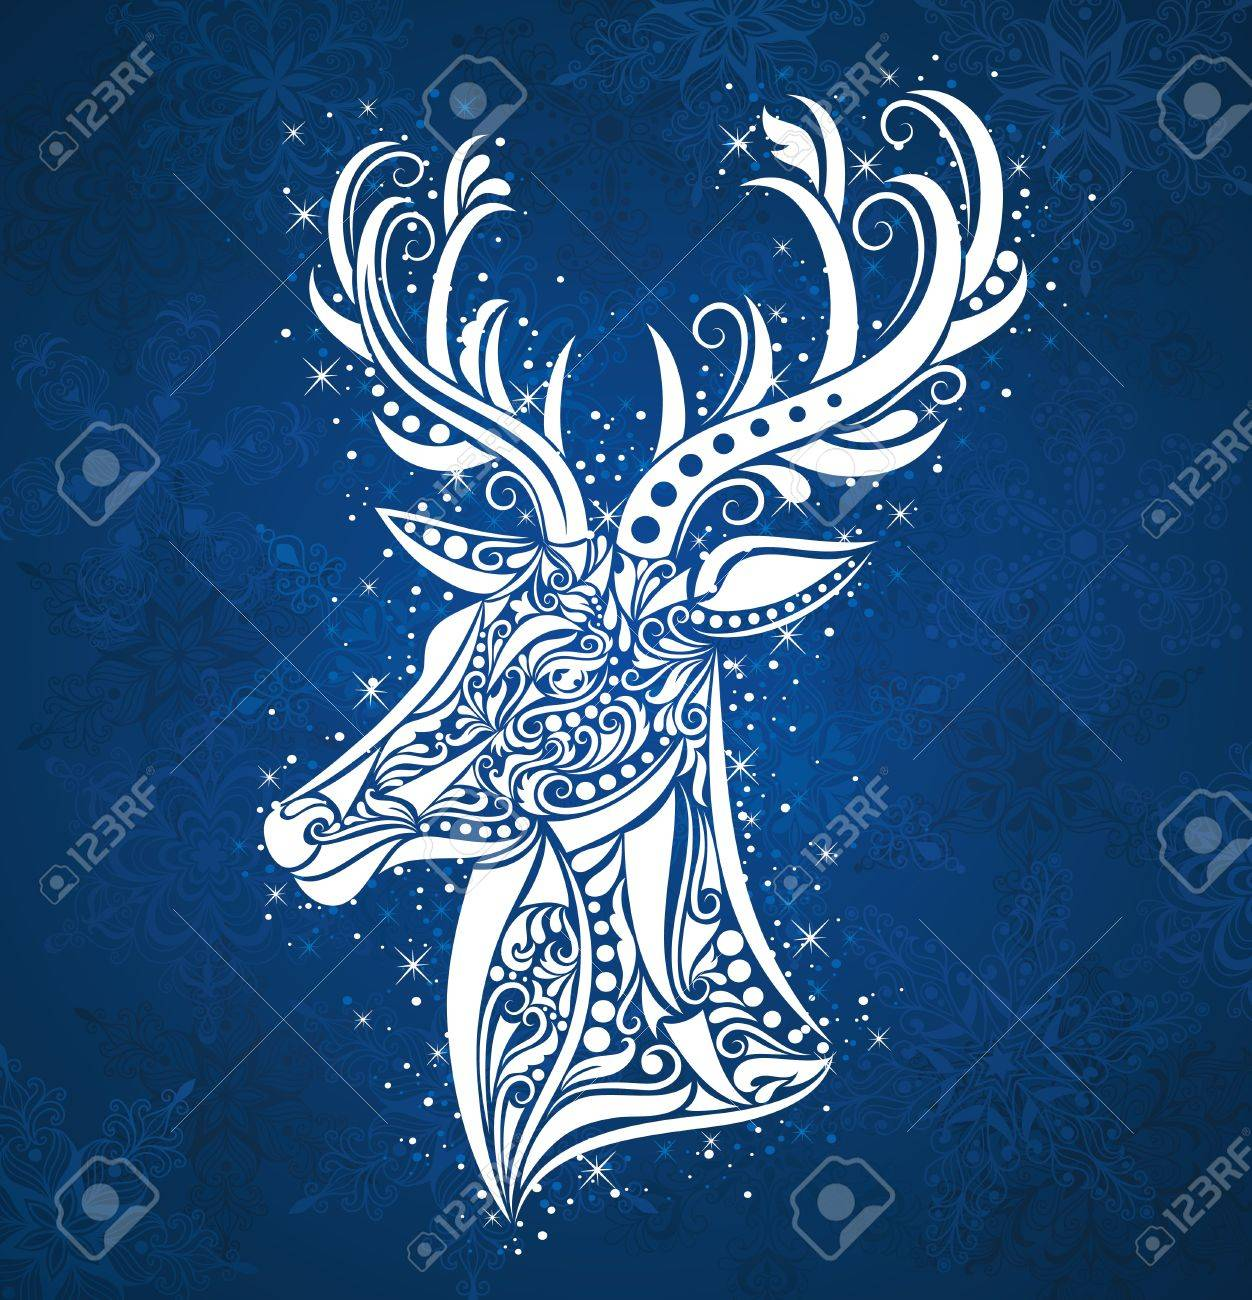 Pattern in a shape of a deer on the blue background. - 16256270